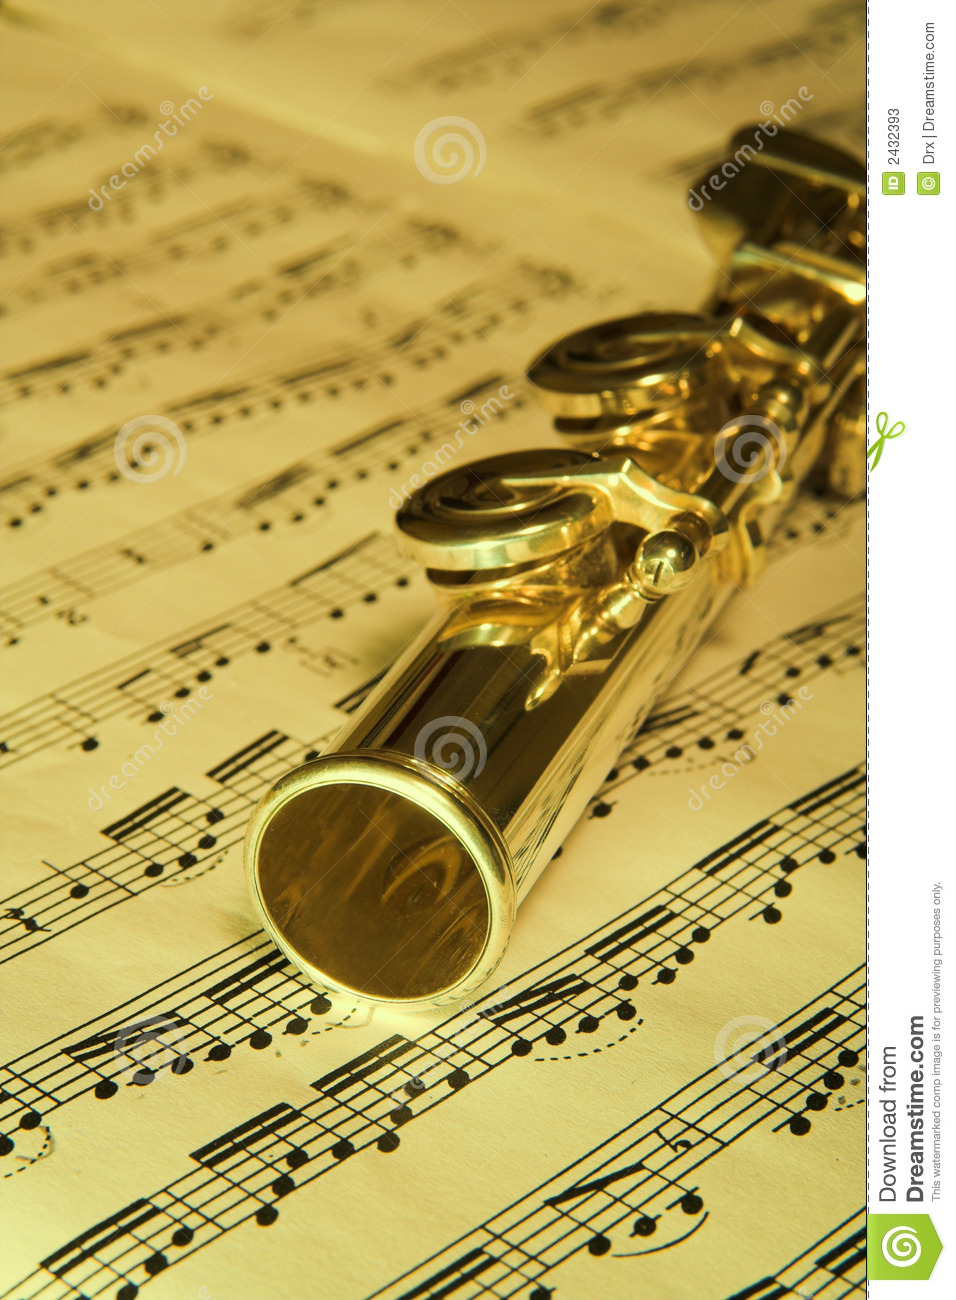 Flute Music Gold flute - music background